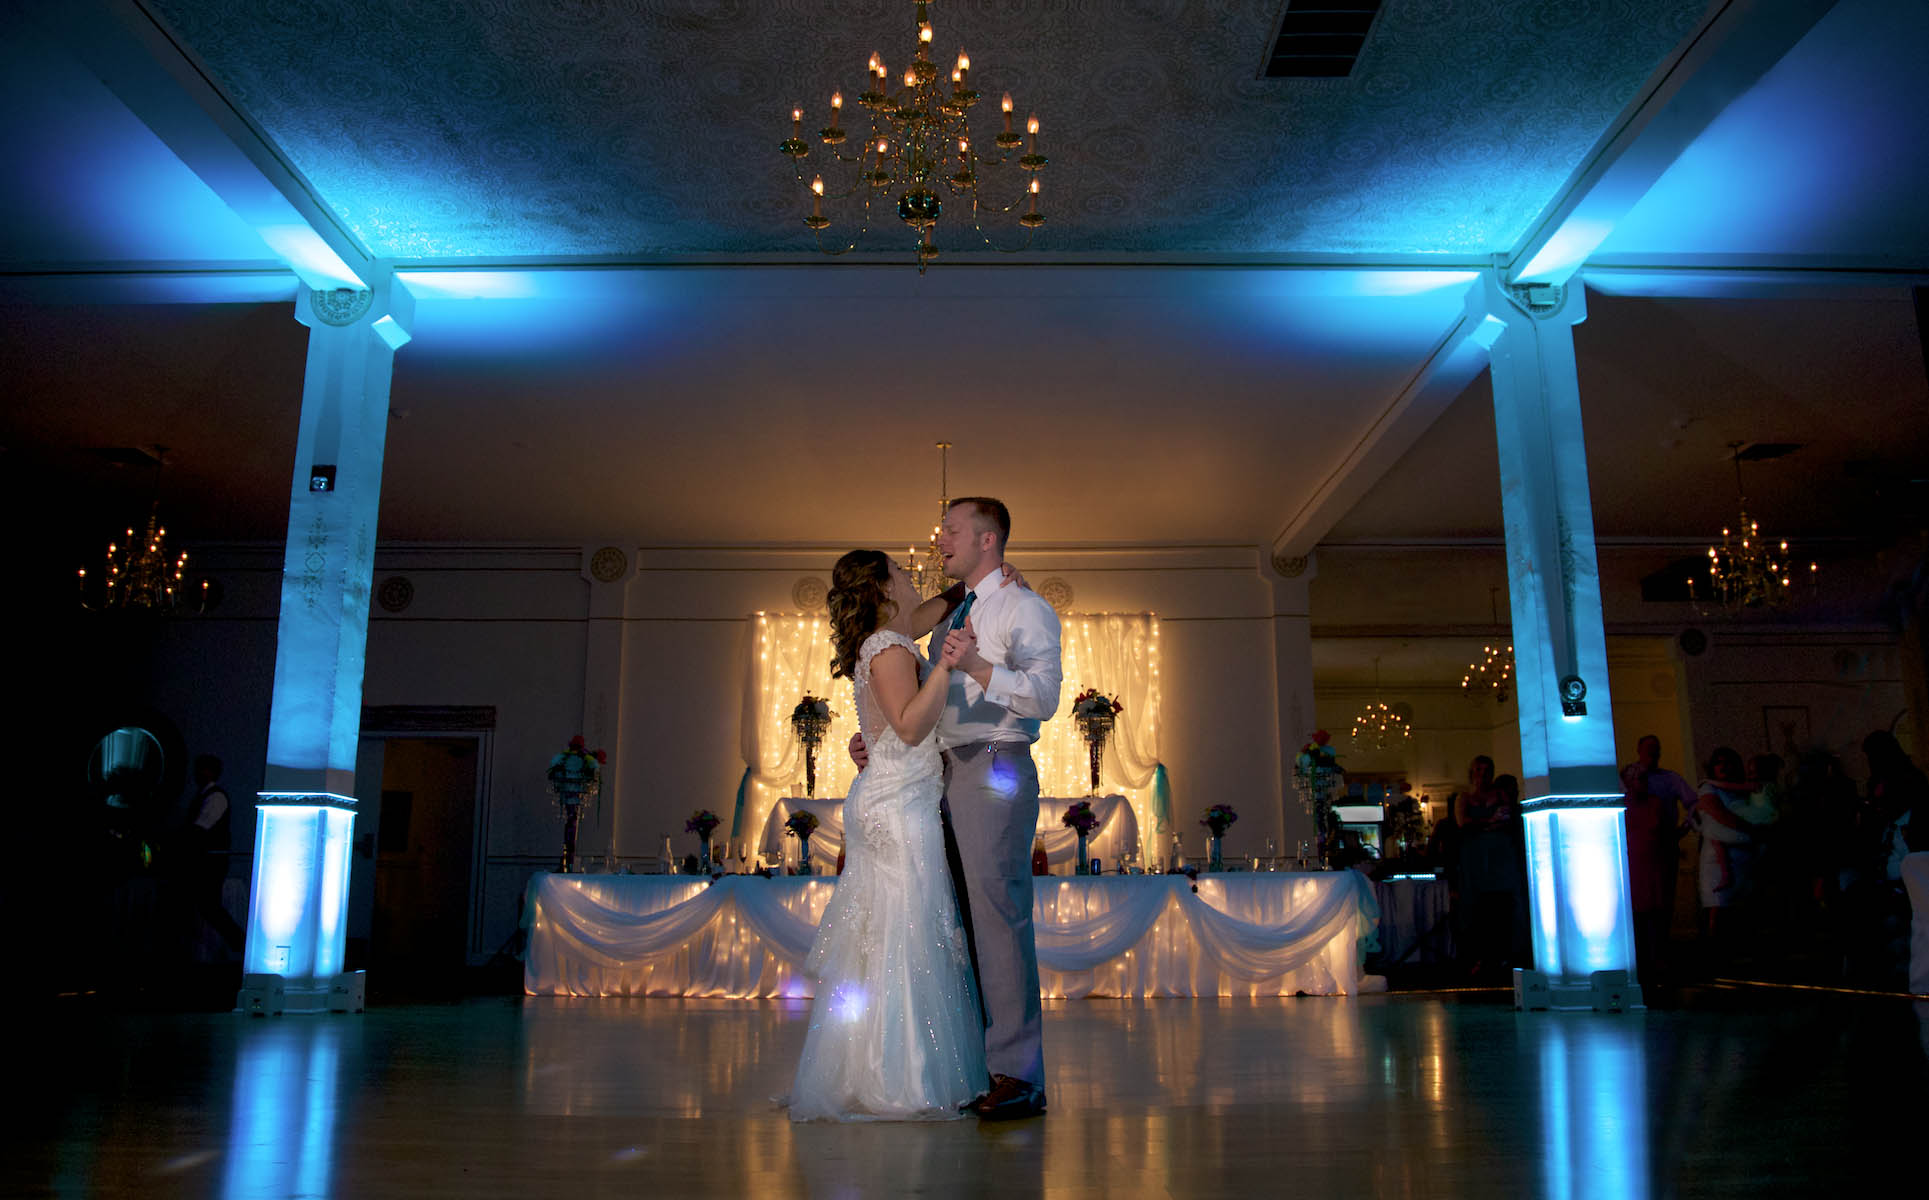 Alissa & Ben enjoy their first dance (uplighting by Music Source Professional Disc Jockey Service). Wedding pictures by Tiffany & Steve of Warmowski Photography.